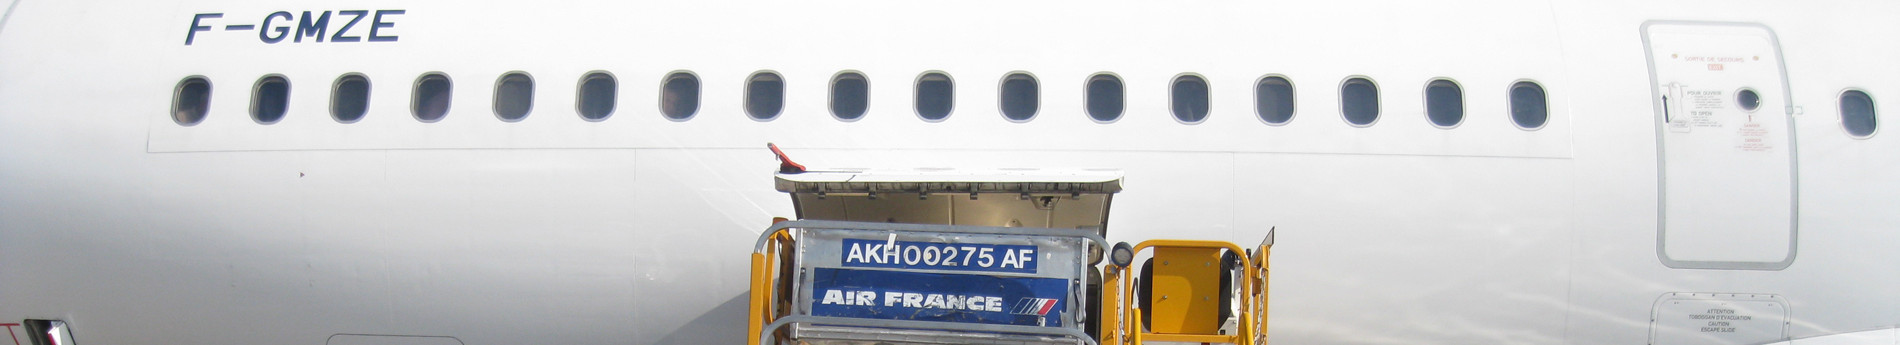 conseil, air france